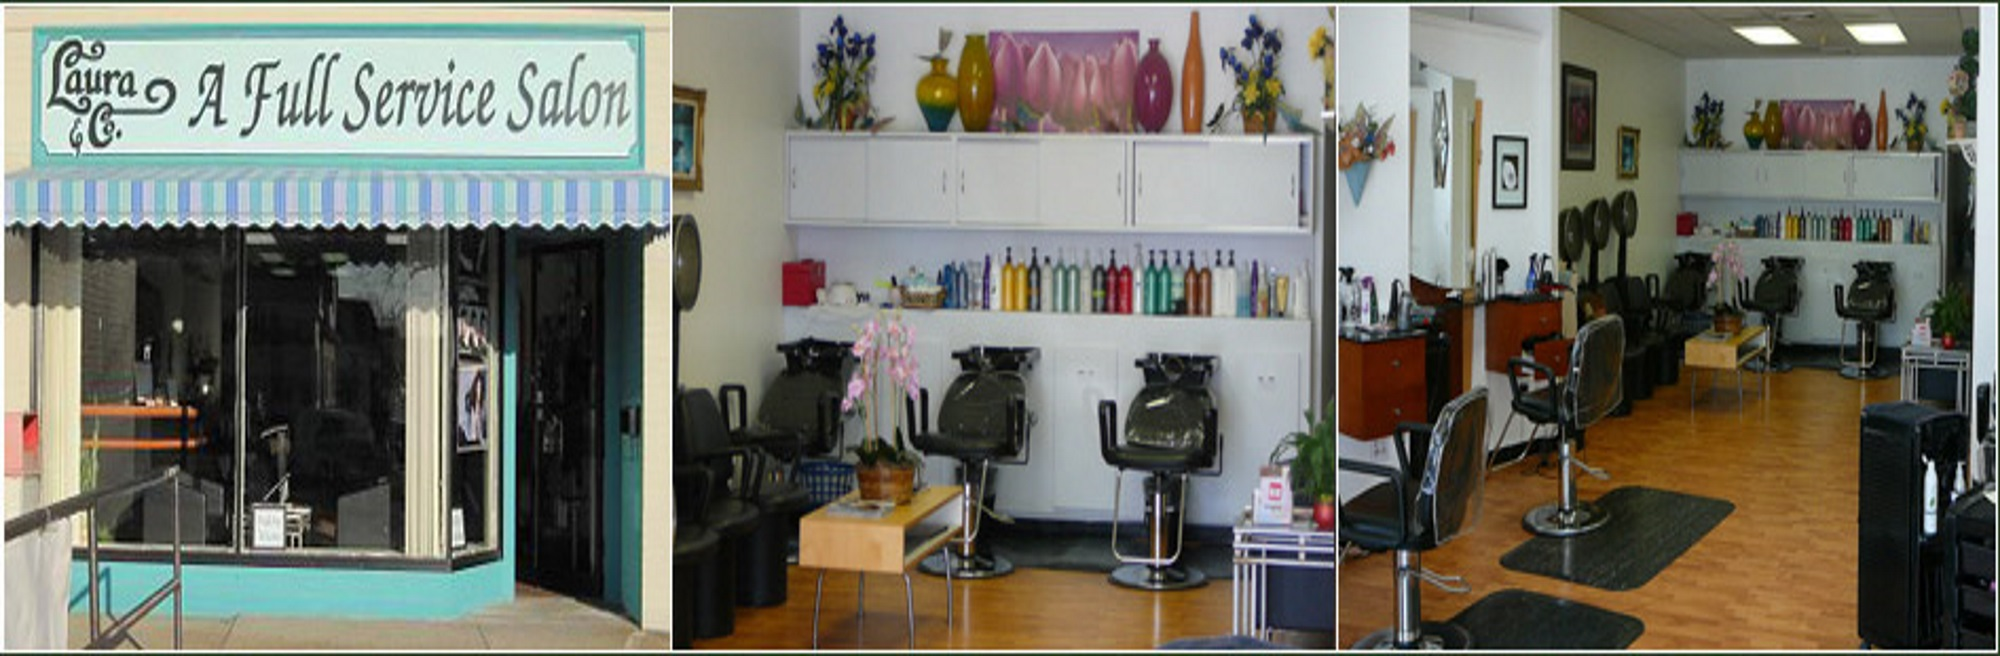 Laura & Co. - A Full Service Salon